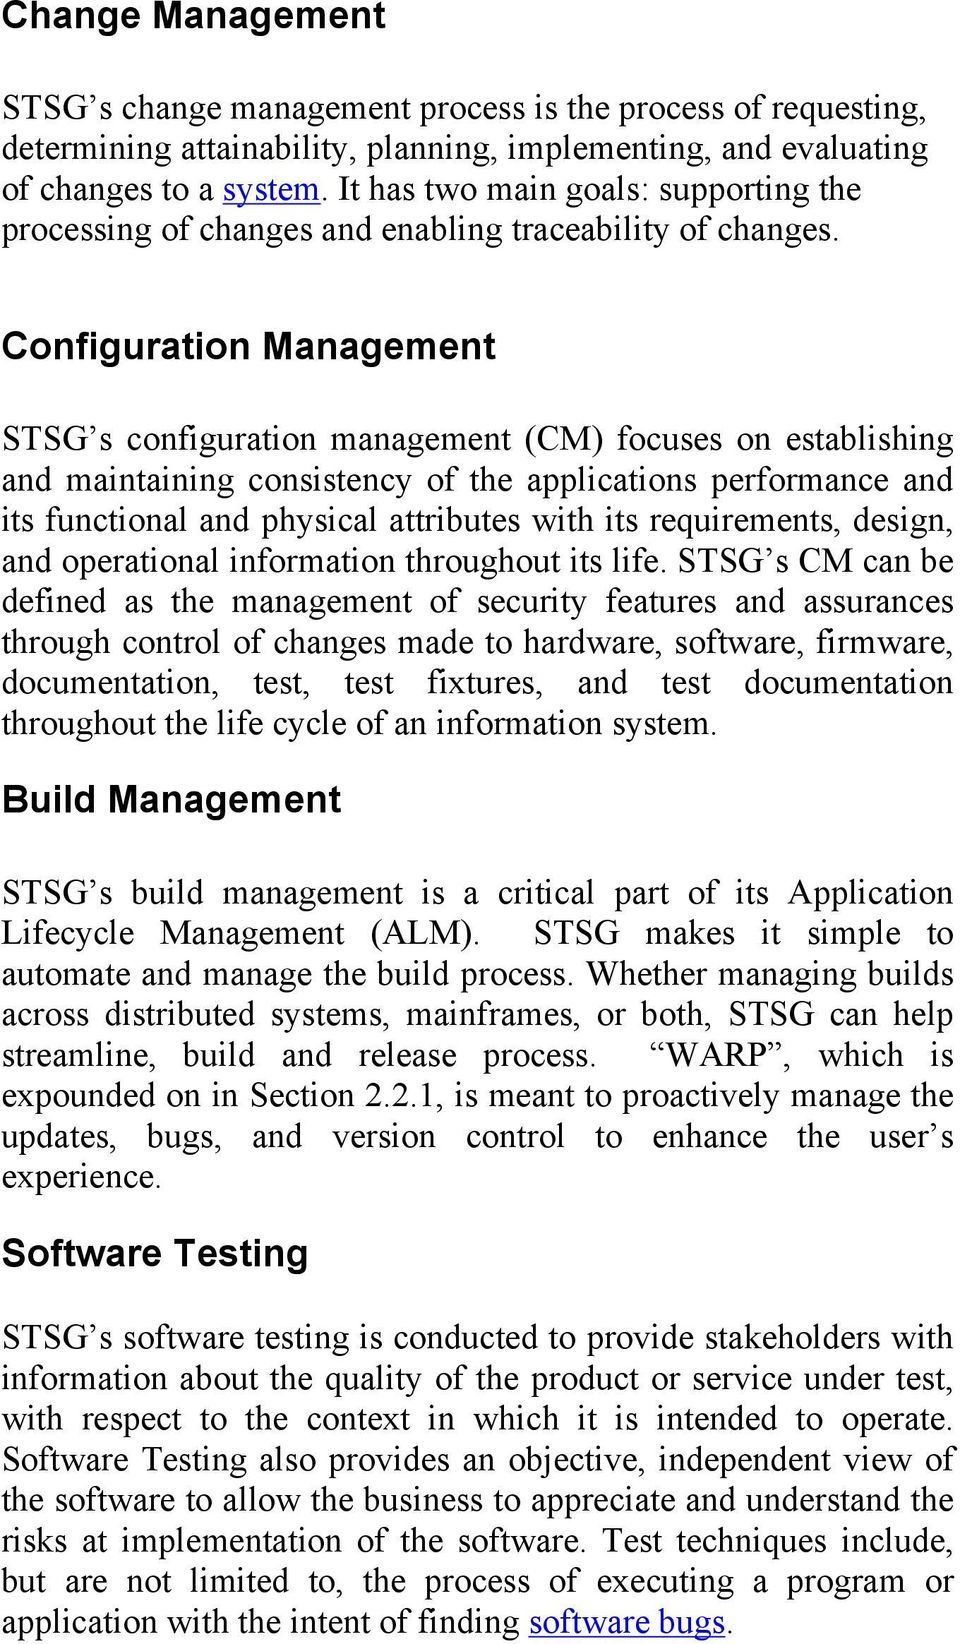 Configuration Management STSG s configuration management (CM) focuses on establishing and maintaining consistency of the applications performance and its functional and physical attributes with its